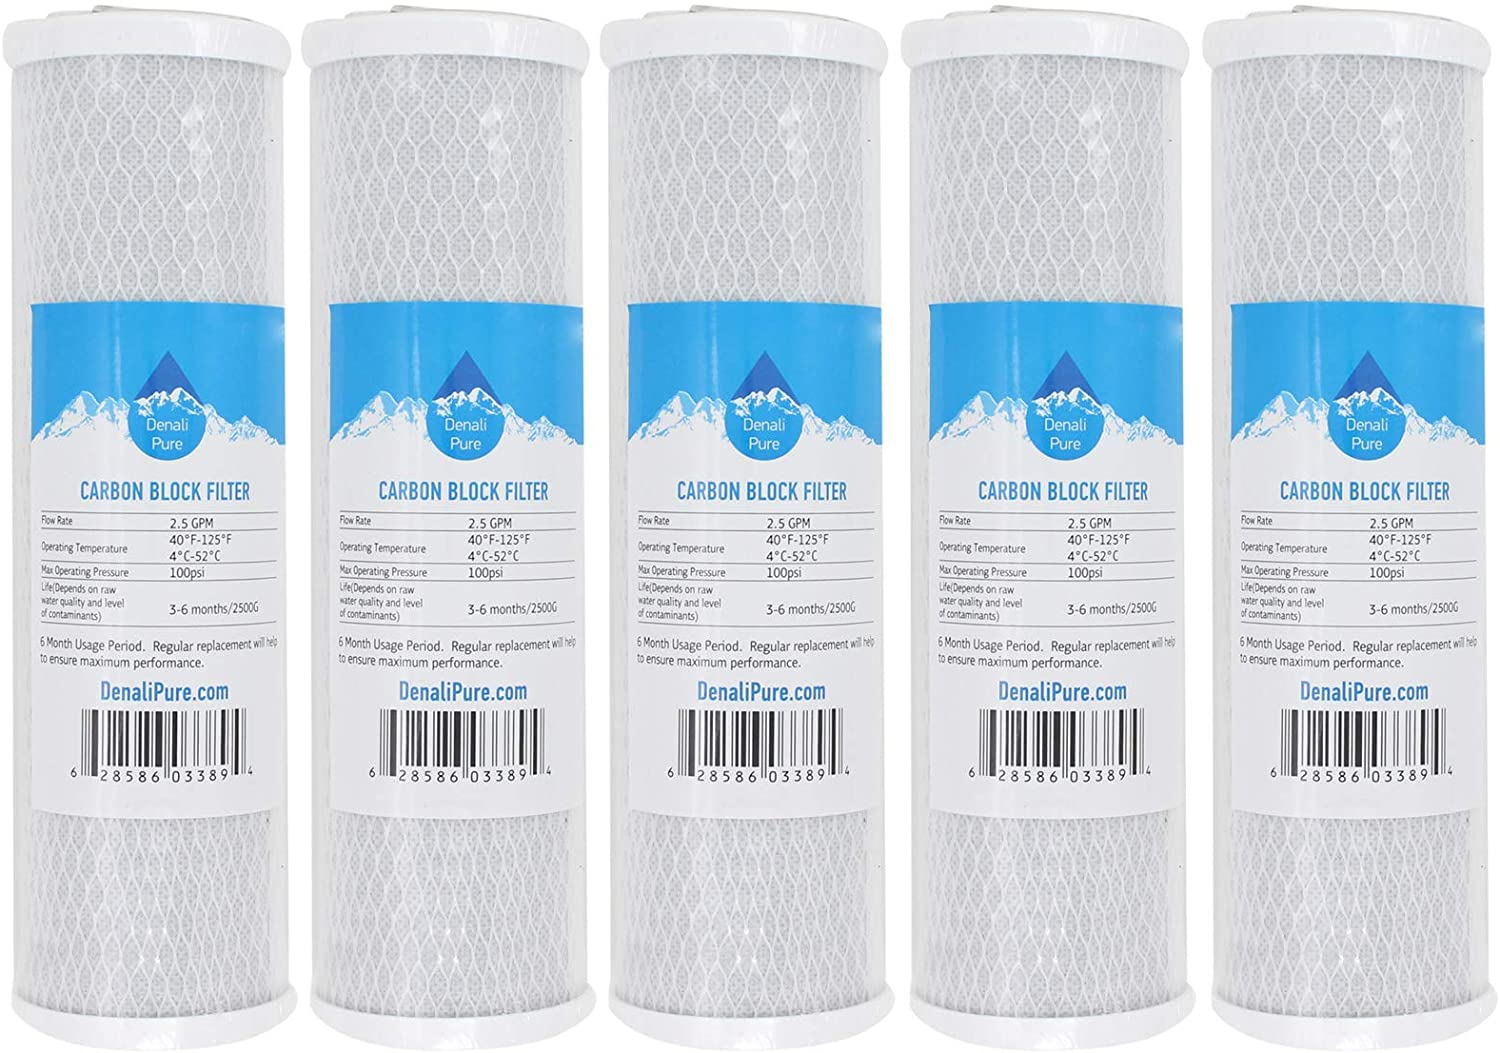 5-Pack Replacement for Hydronix HF3-10CLBK34 Activated Carbon Block Filter - Universal 10 inch Filter Compatible with Hydronix HF3-10CLBK34 10